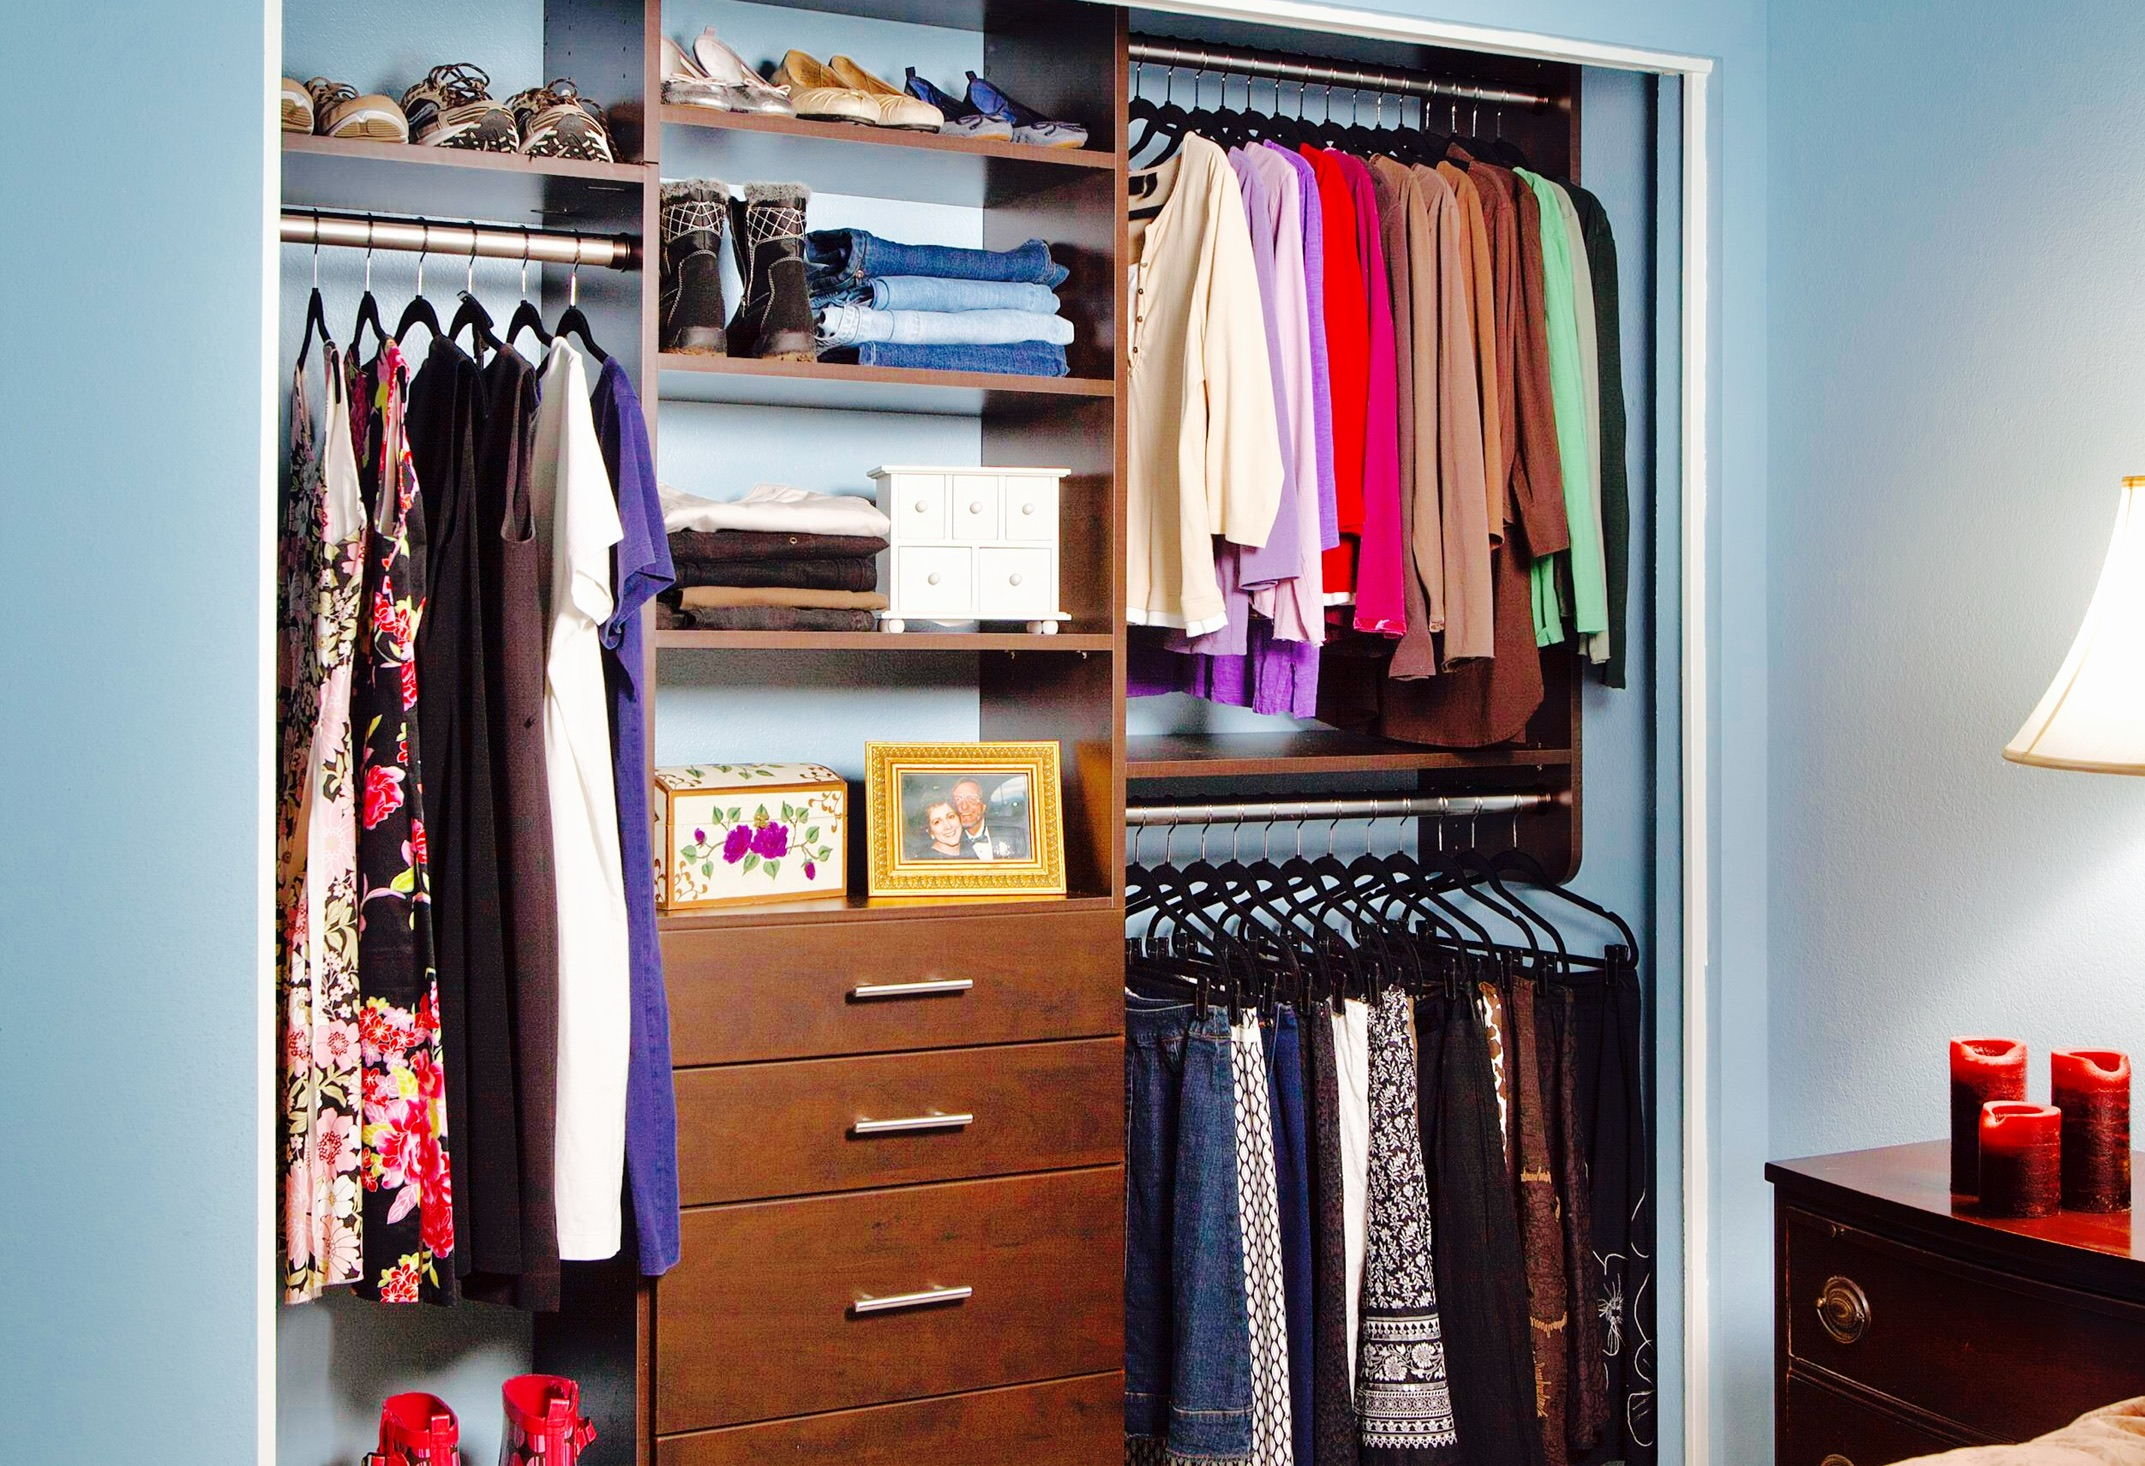 No space is wasted space in a well-designed custom closet.  Call Closets of Tulsa  today for a FREE consultation and 3-D closet design:  918.609.0214